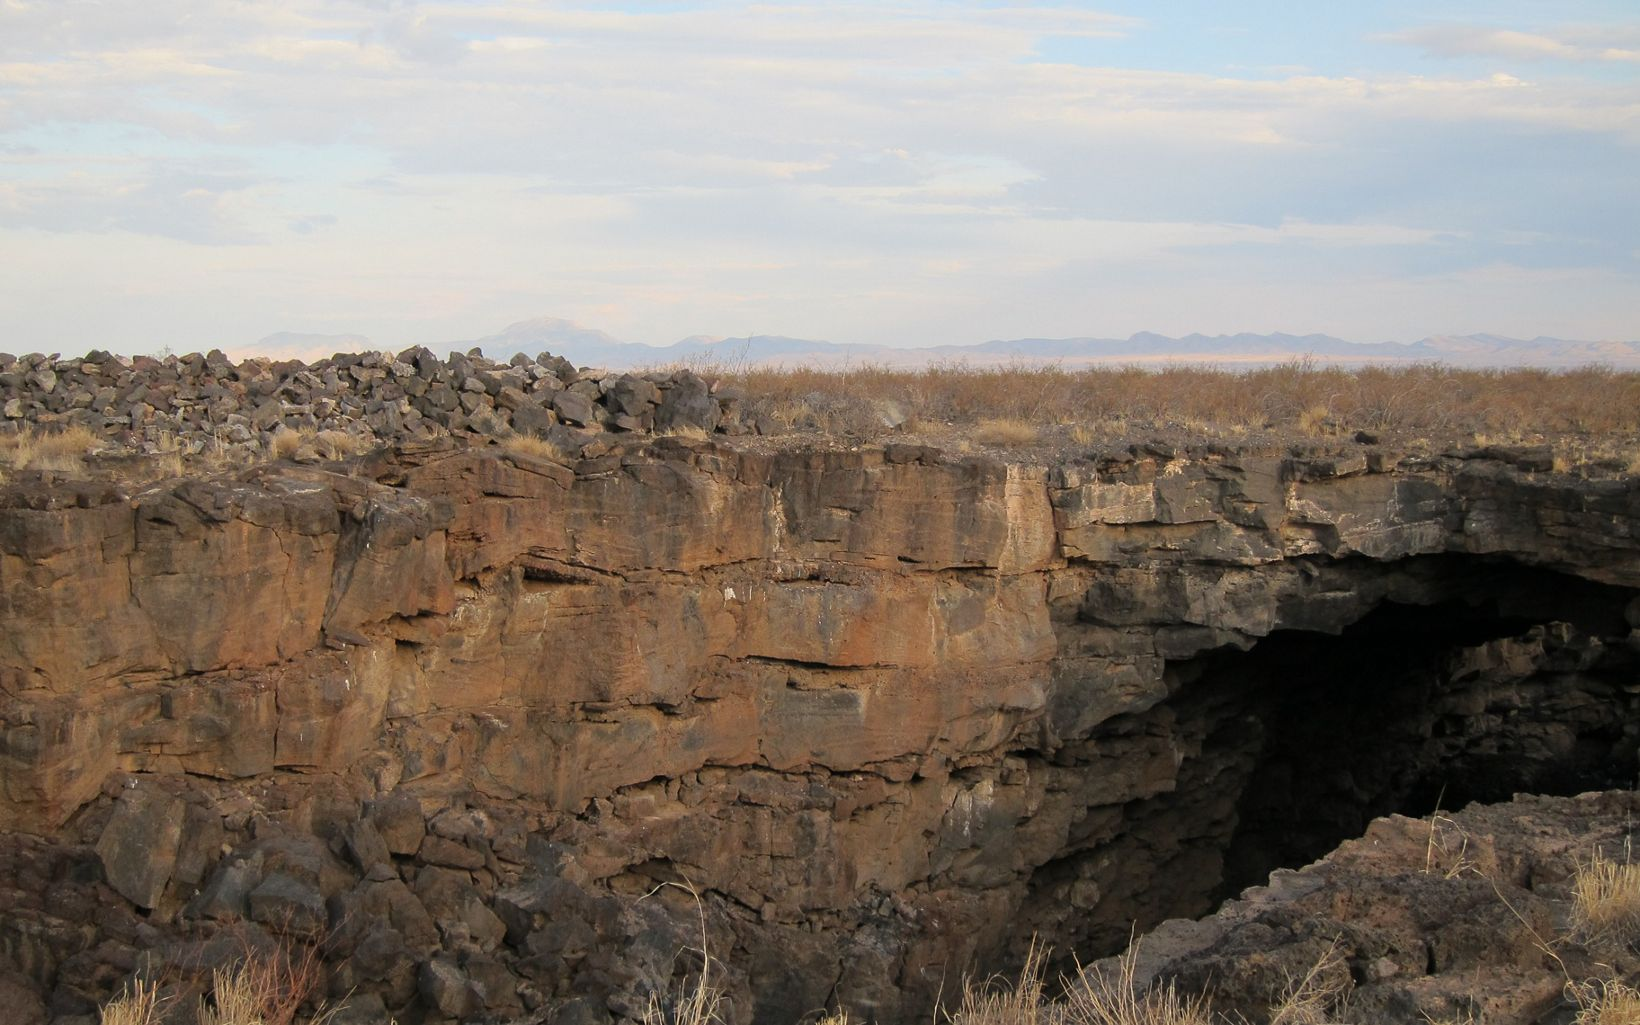 Eight million migratory bats use the Jornada Bat Caves as a stop-over site.